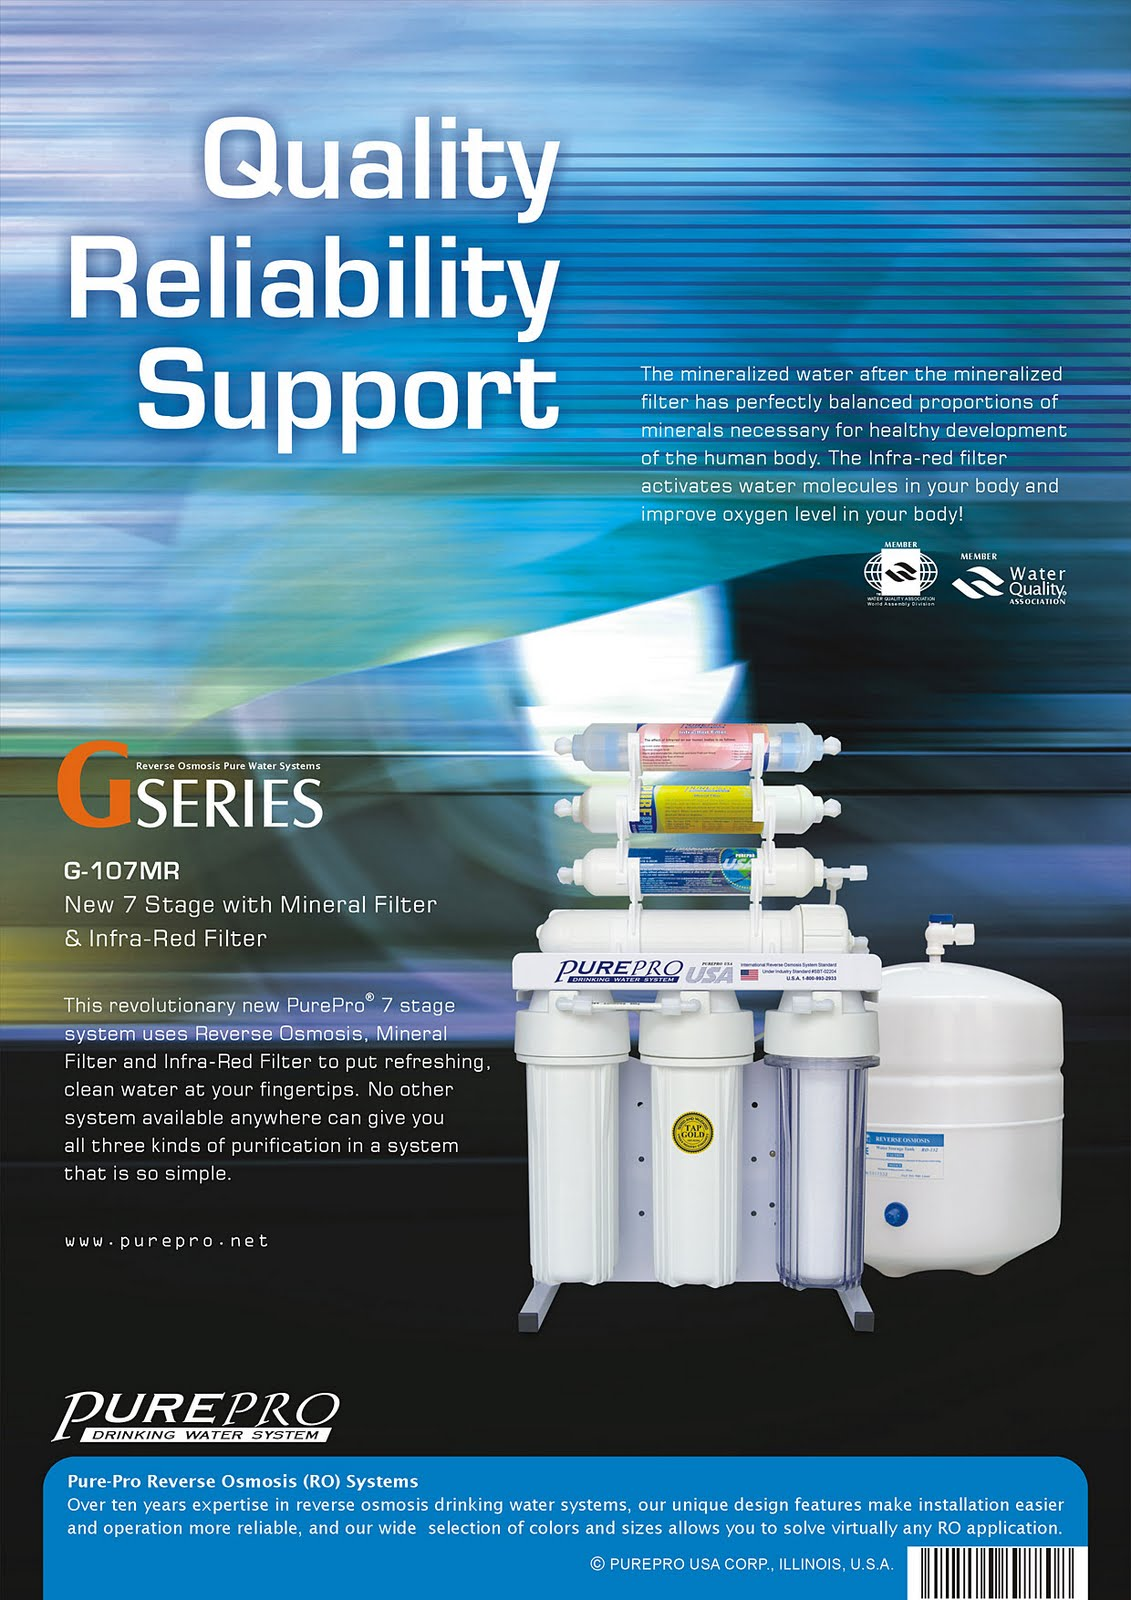 PurePro® G-107MR Reverse Osmosis Water Filtration System